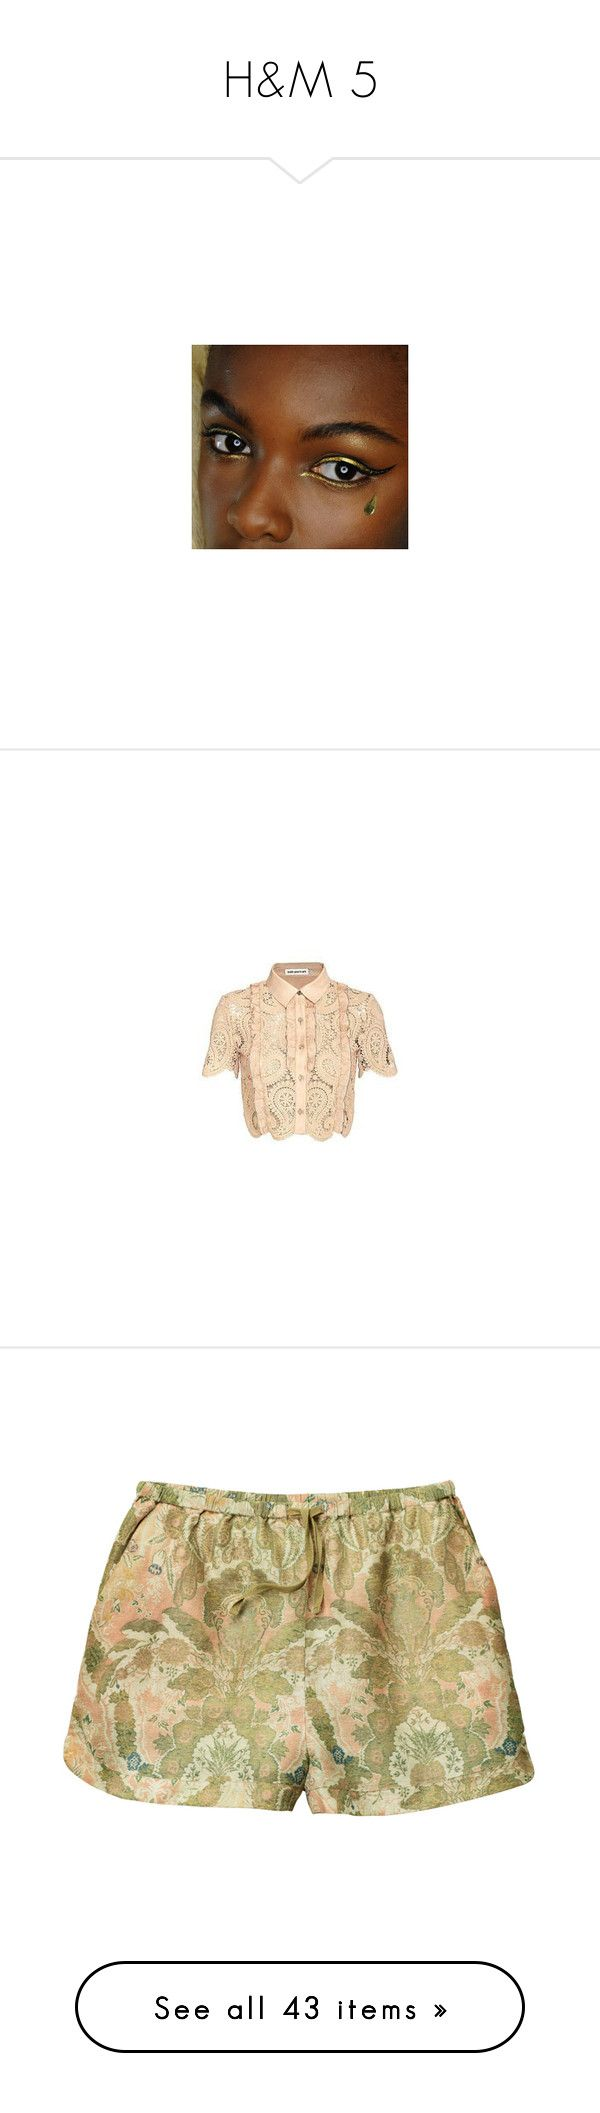 """""""H&M 5"""" by pocahaunted666 ❤ liked on Polyvore featuring tops, blouses, beige top, h&m blouse, beige blouse, button blouse, short sleeve tops, h&m, accessories and eyewear"""